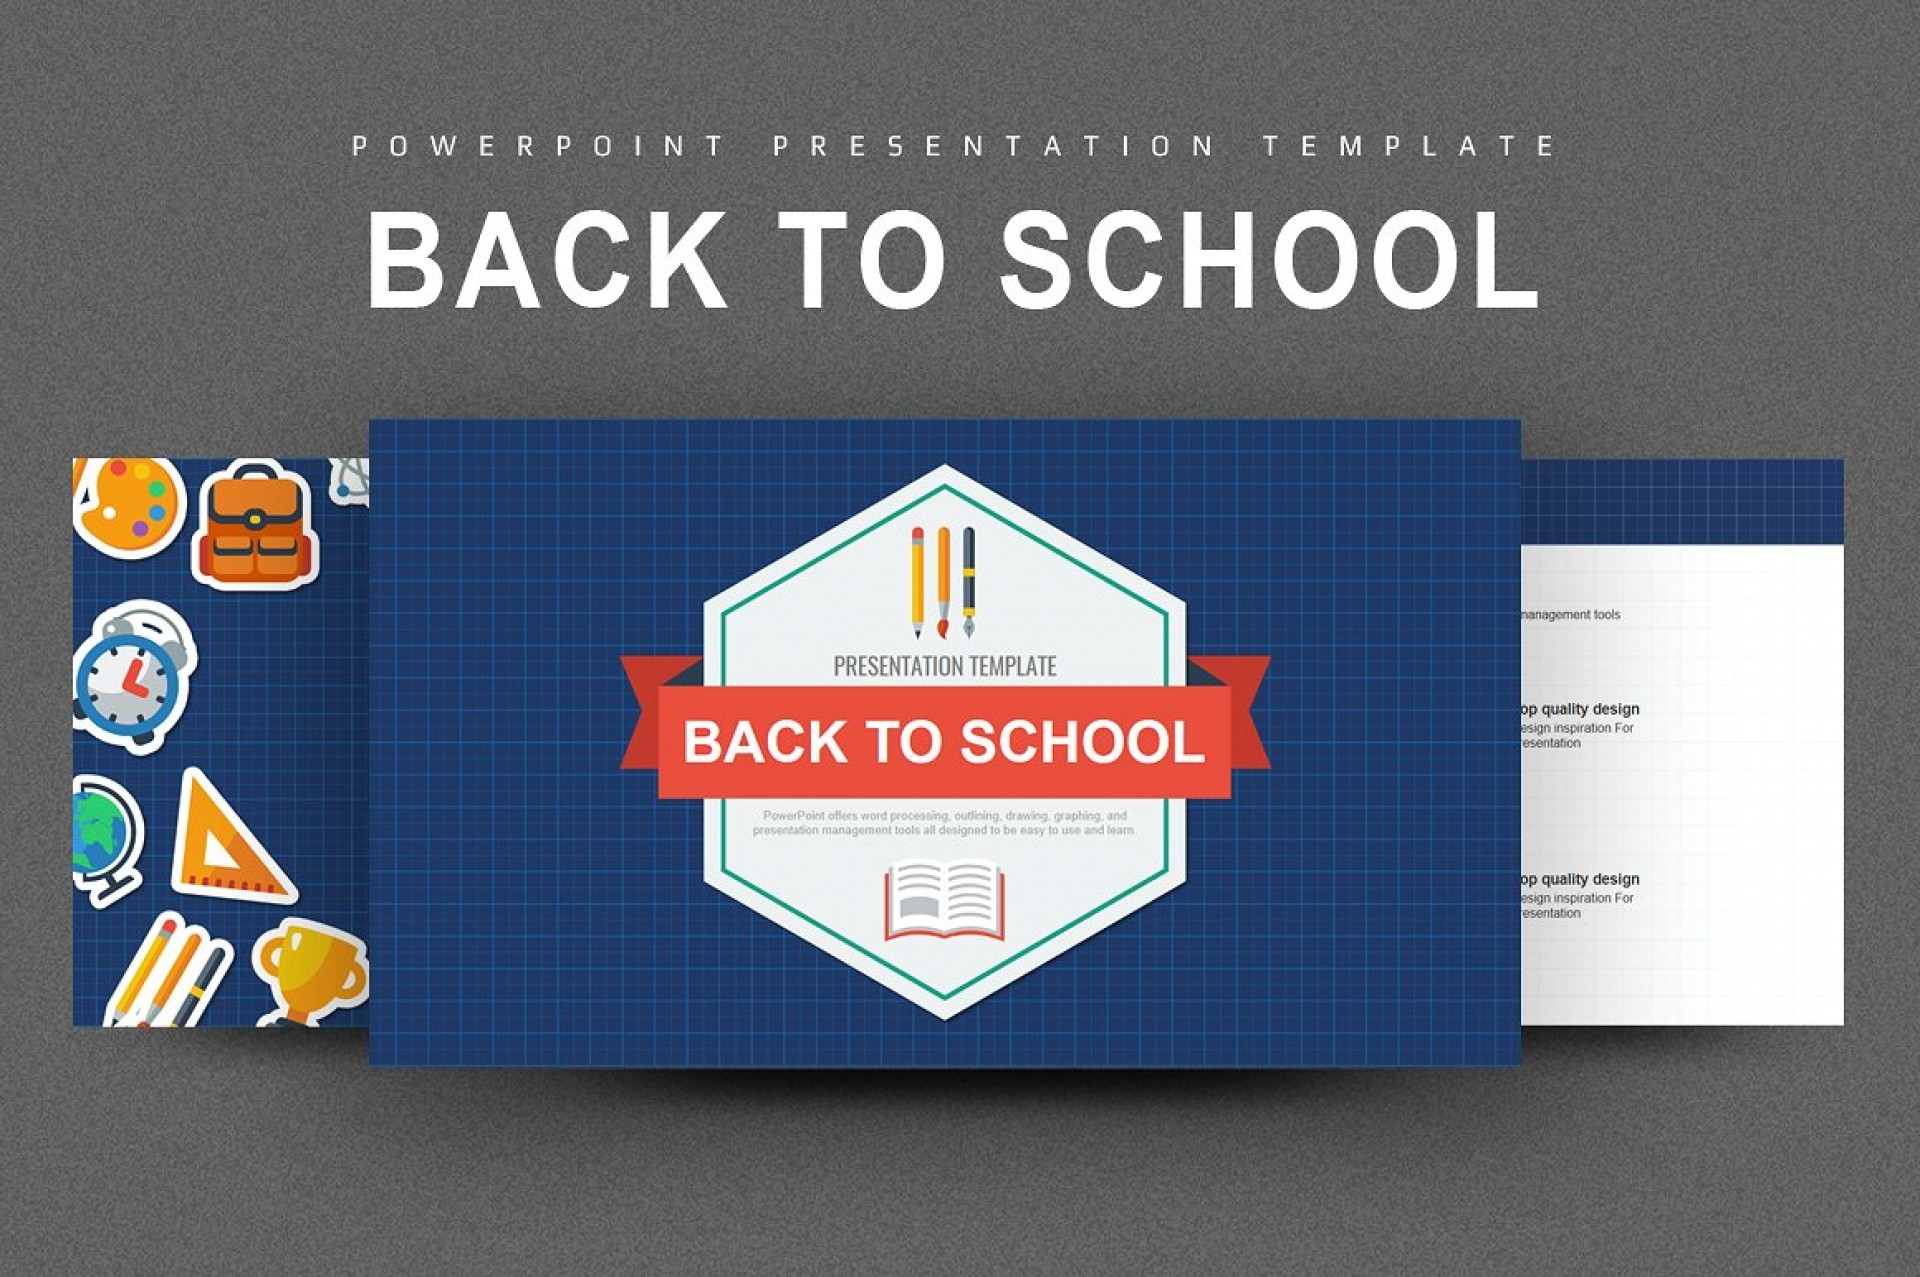 003 Wondrou Powerpoint Template Free Education Idea  Download Presentation Ppt1920